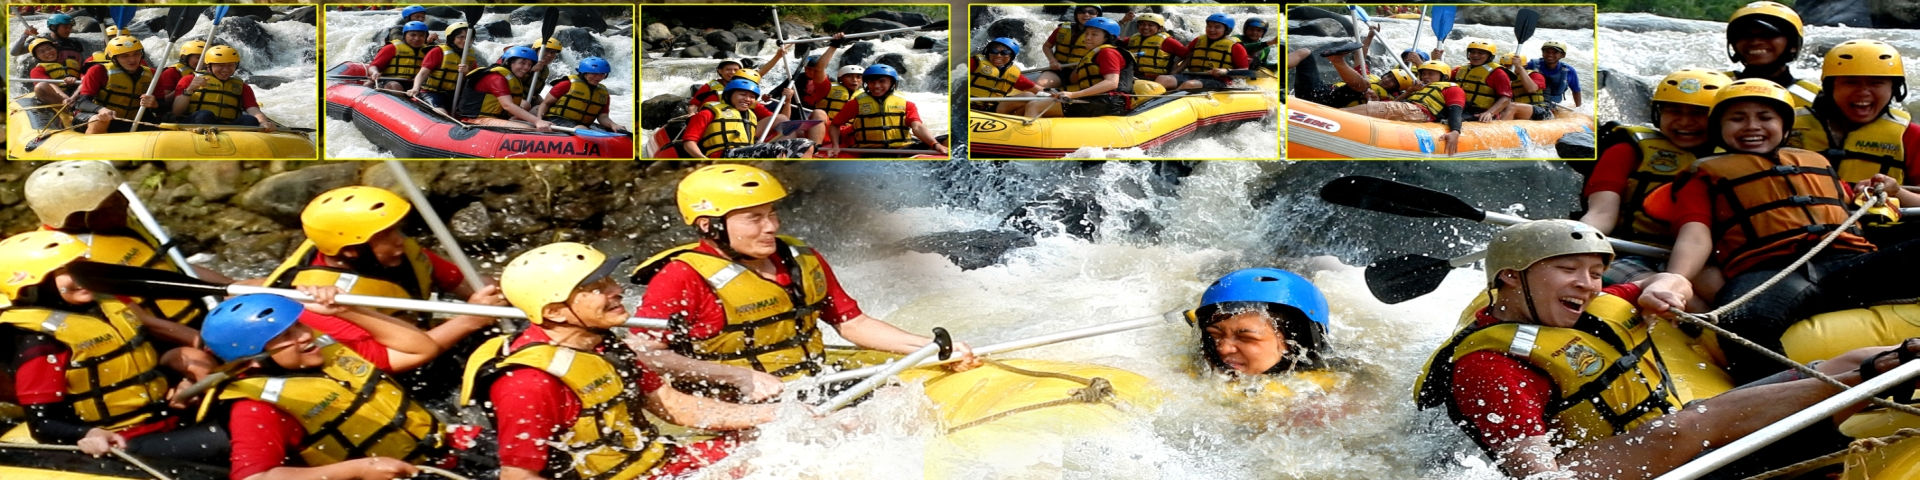 RAFTING.CO.ID